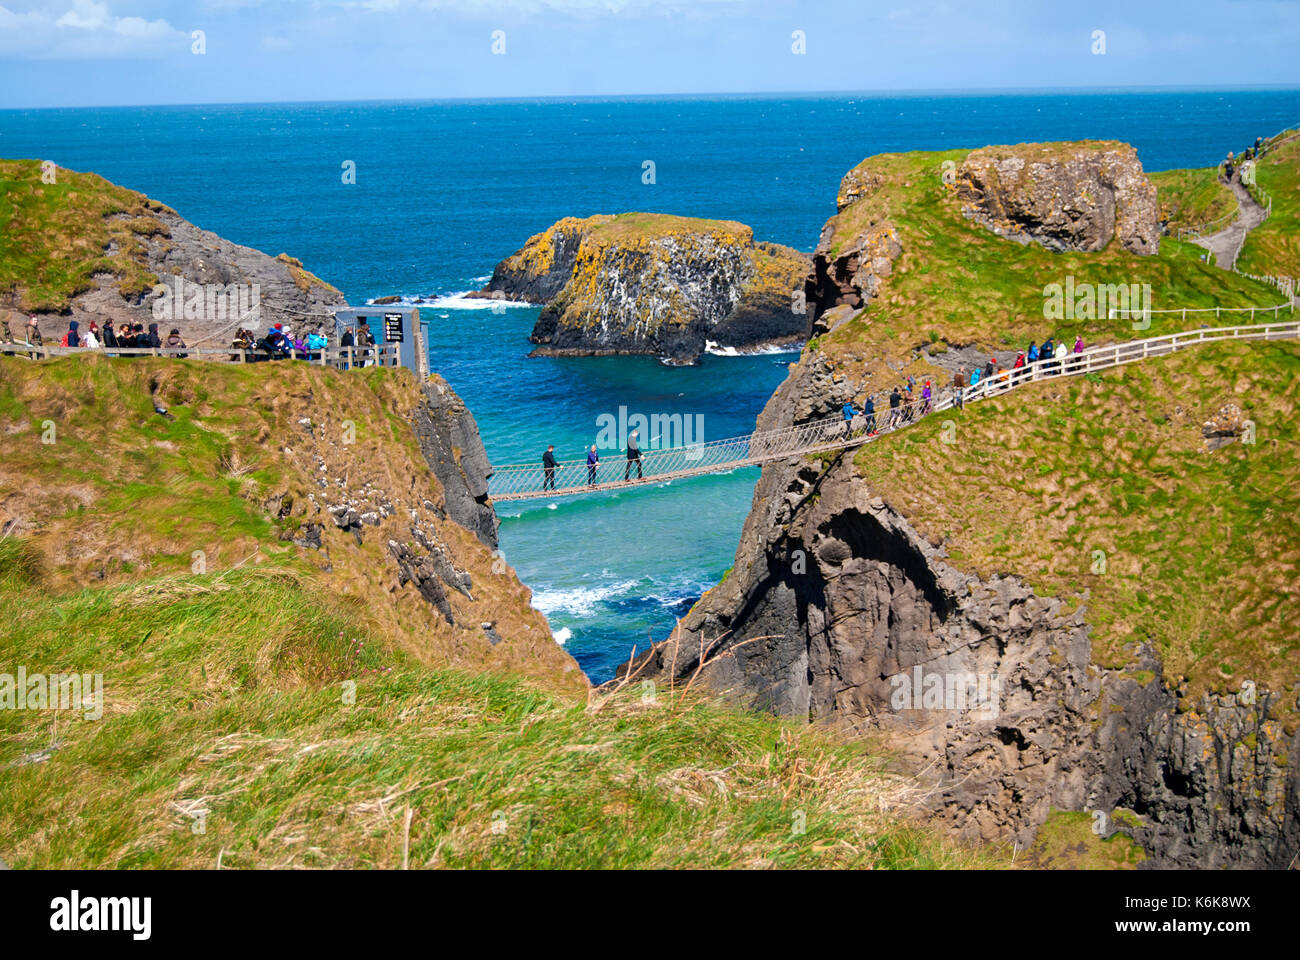 Ballintoy, United Kingdom - May 2, 2016: Carrick-a-Rede Rope Bridge, a popular tourist destination in Northern Ireland. Tourists passing the bridge. - Stock Image